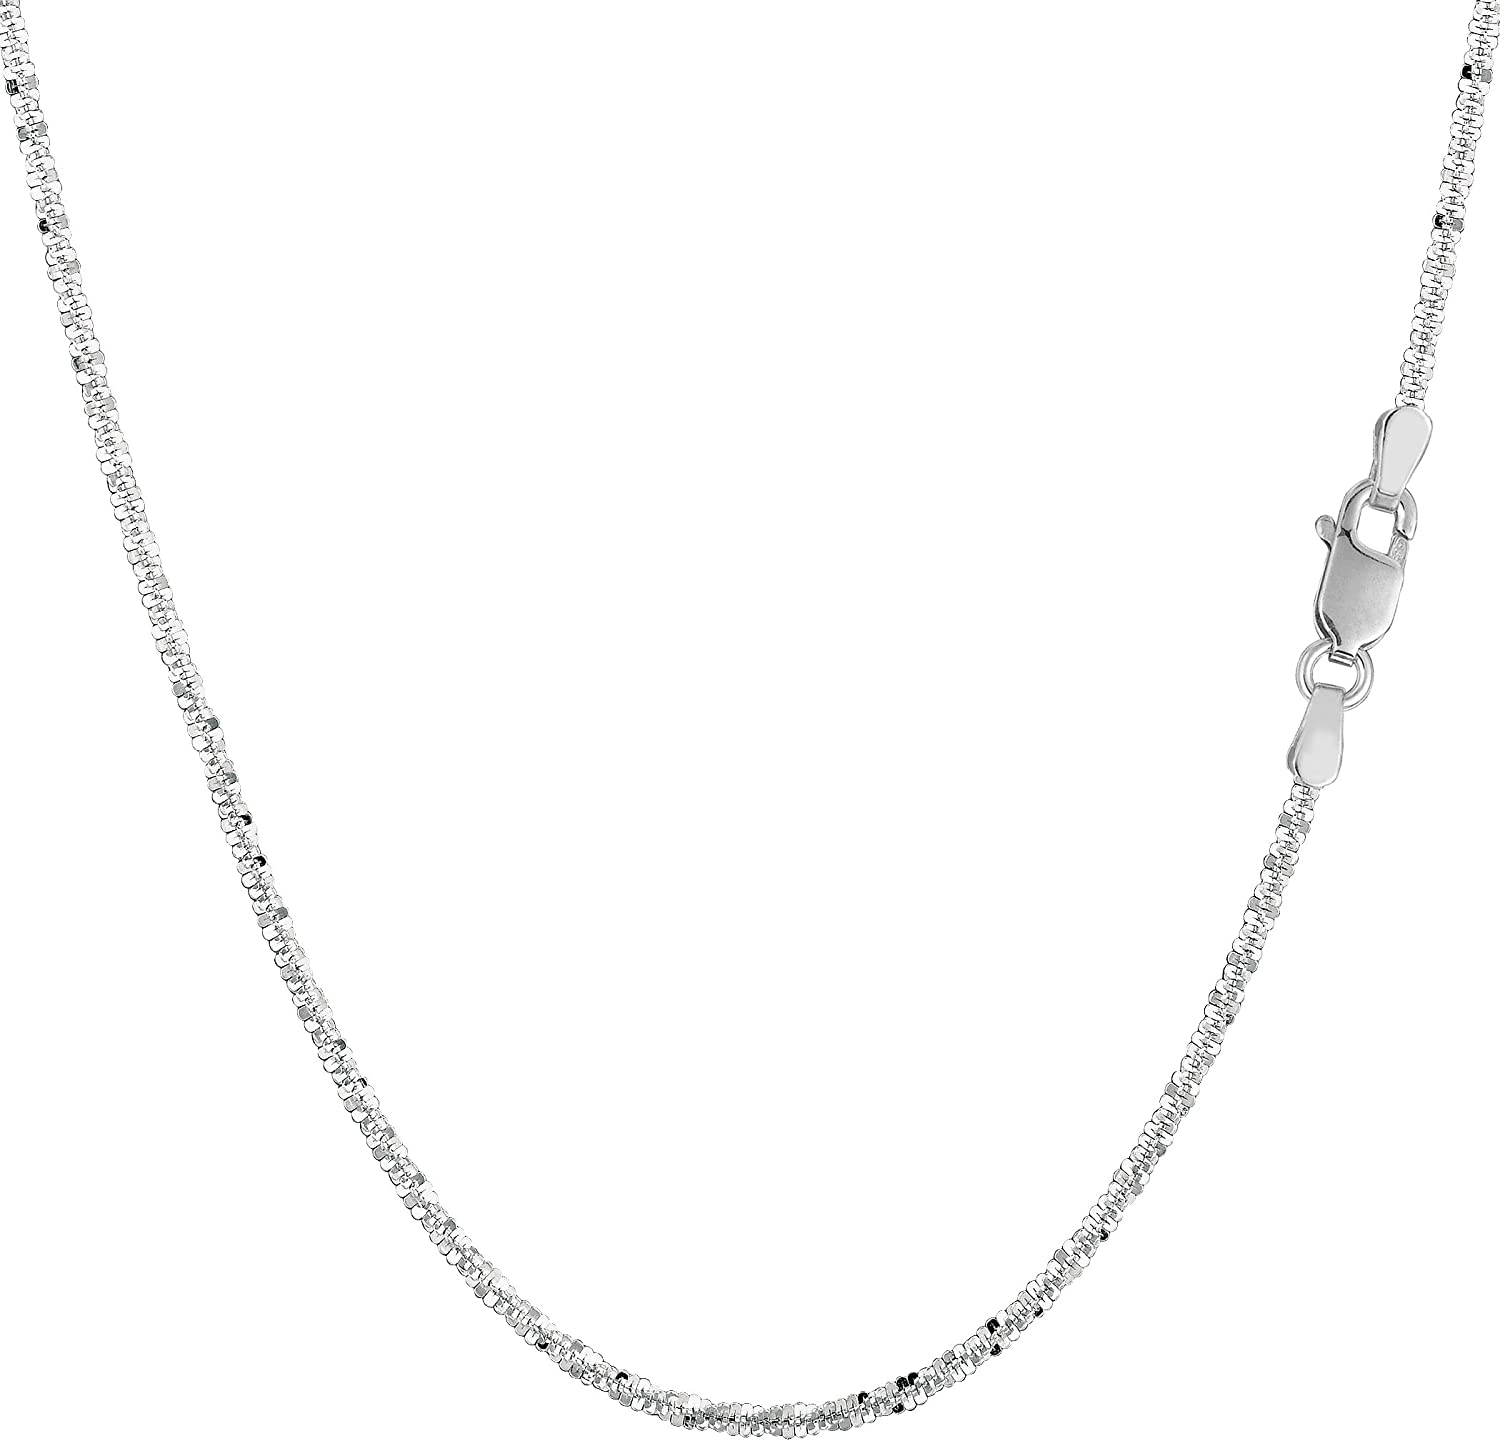 14k White Gold Sparkle Chain Necklace, 1.5mm